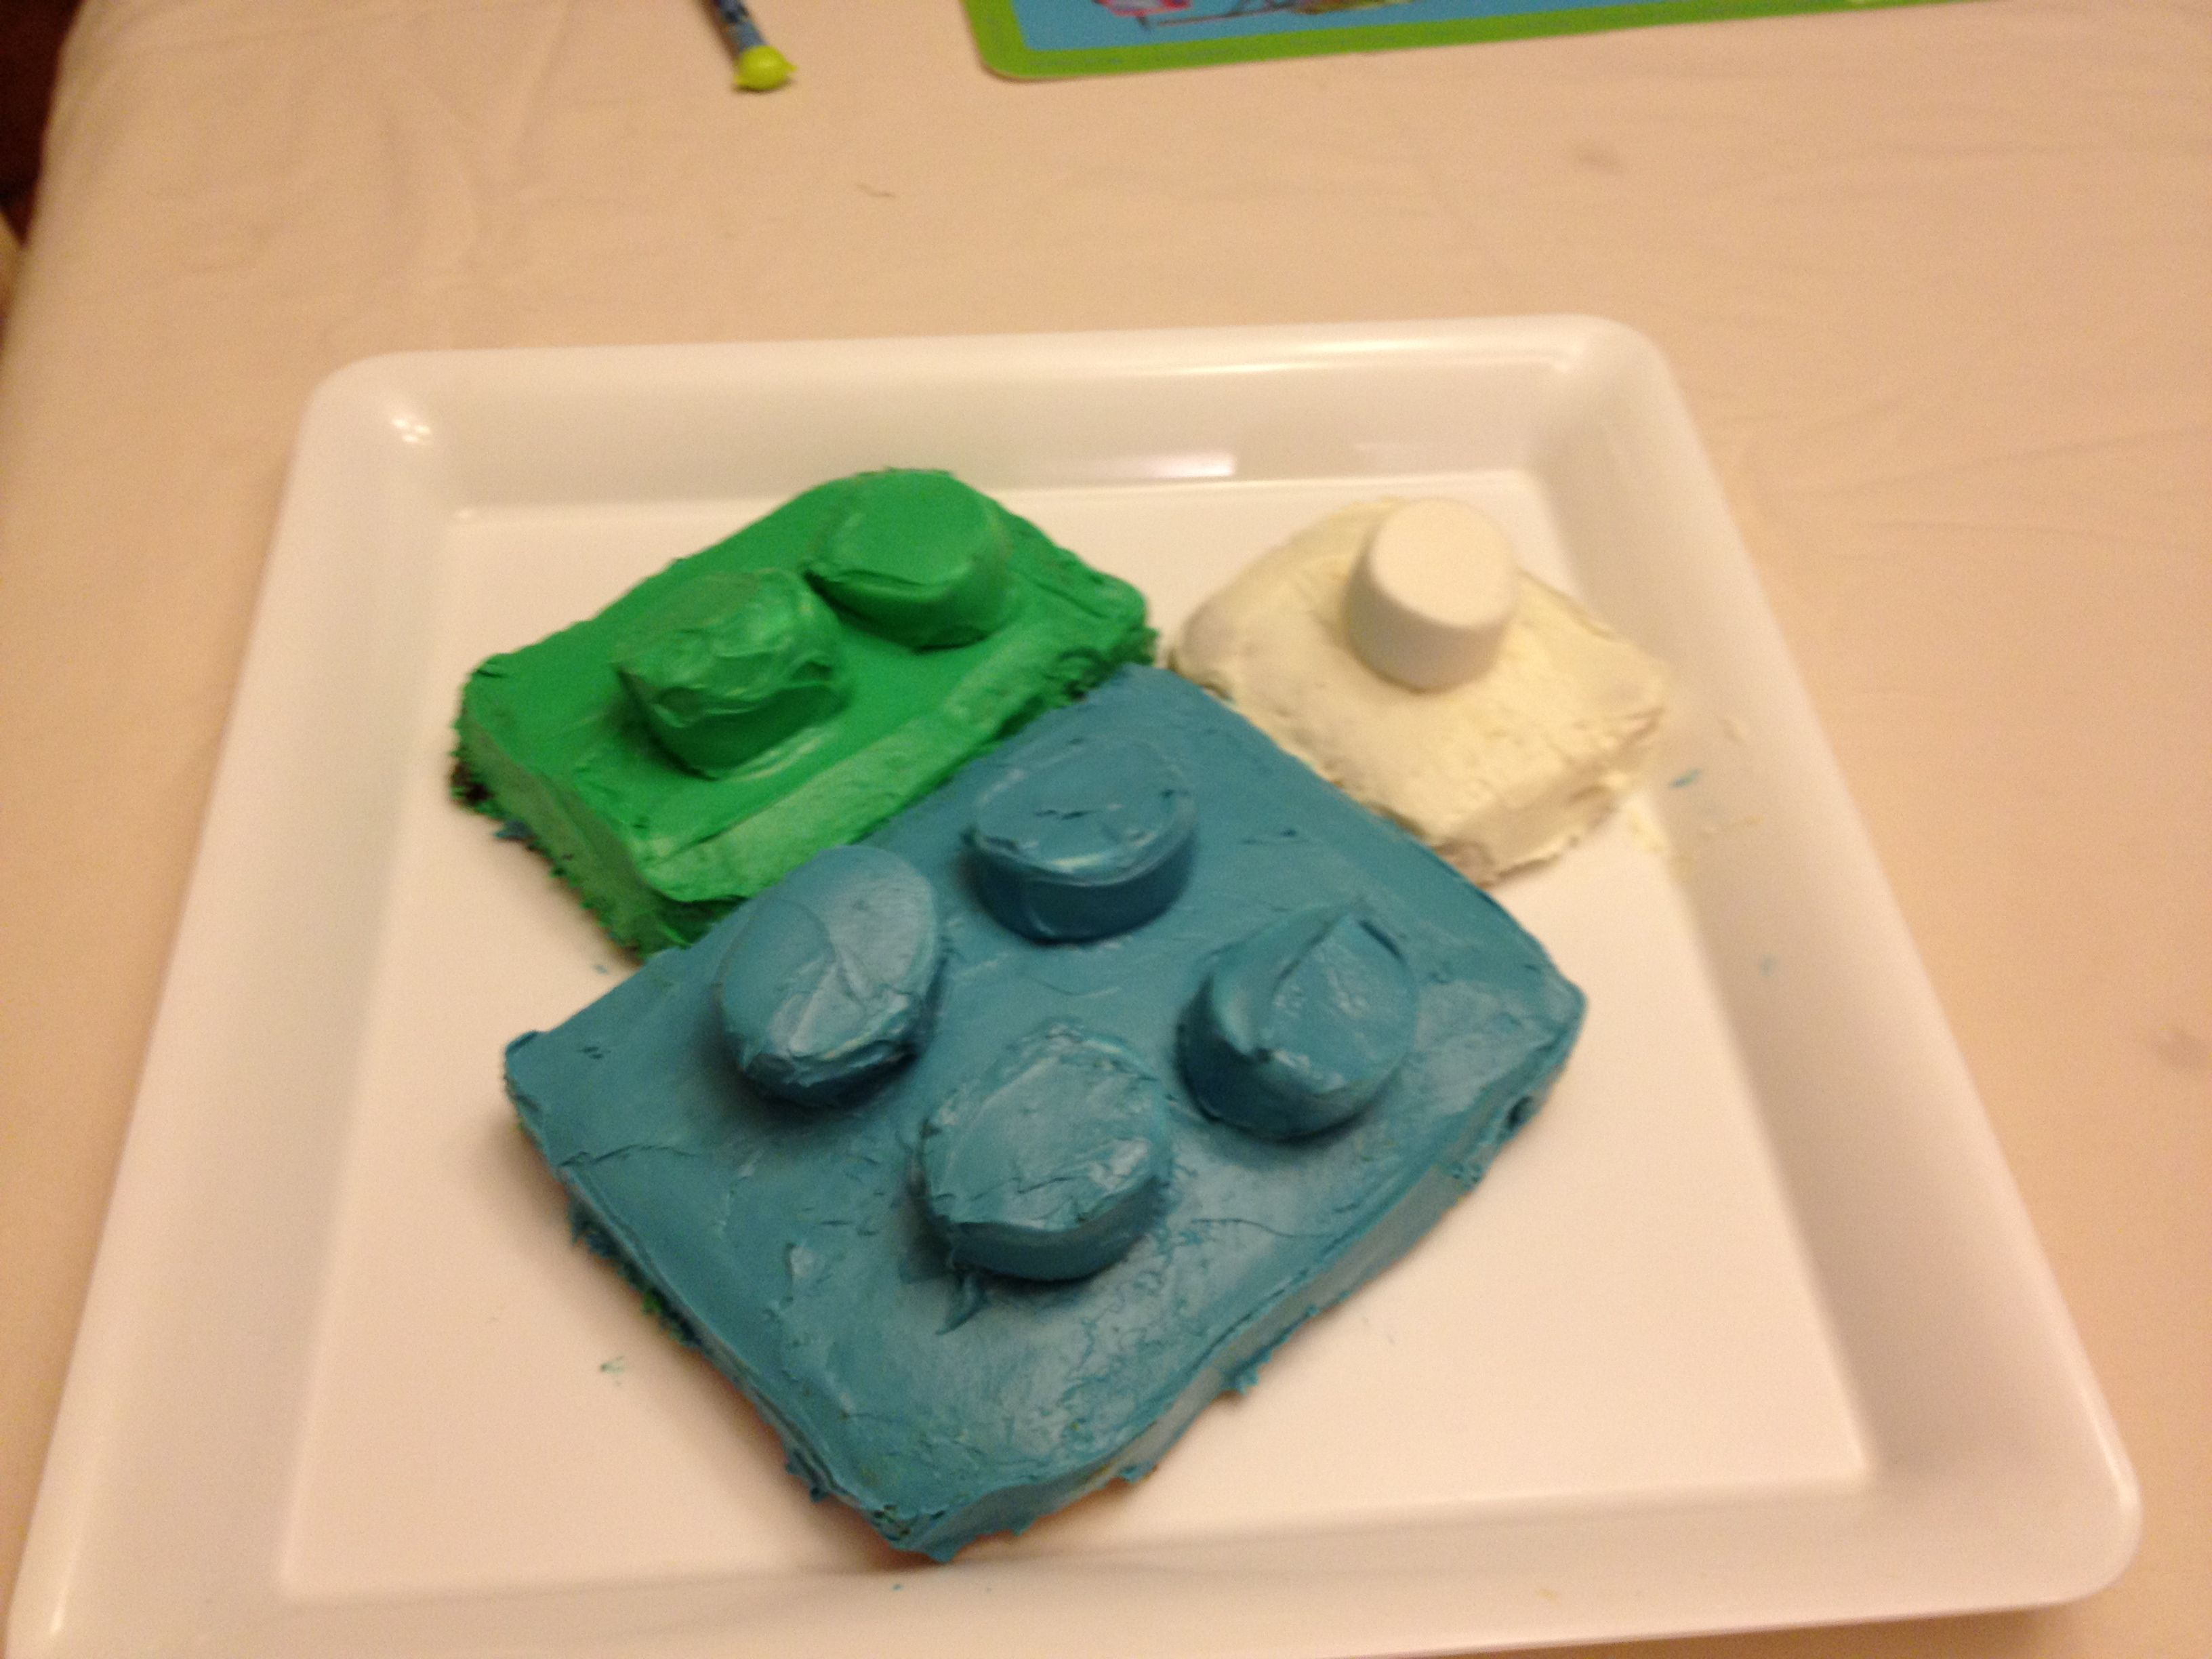 My attempt at a Lego cake!